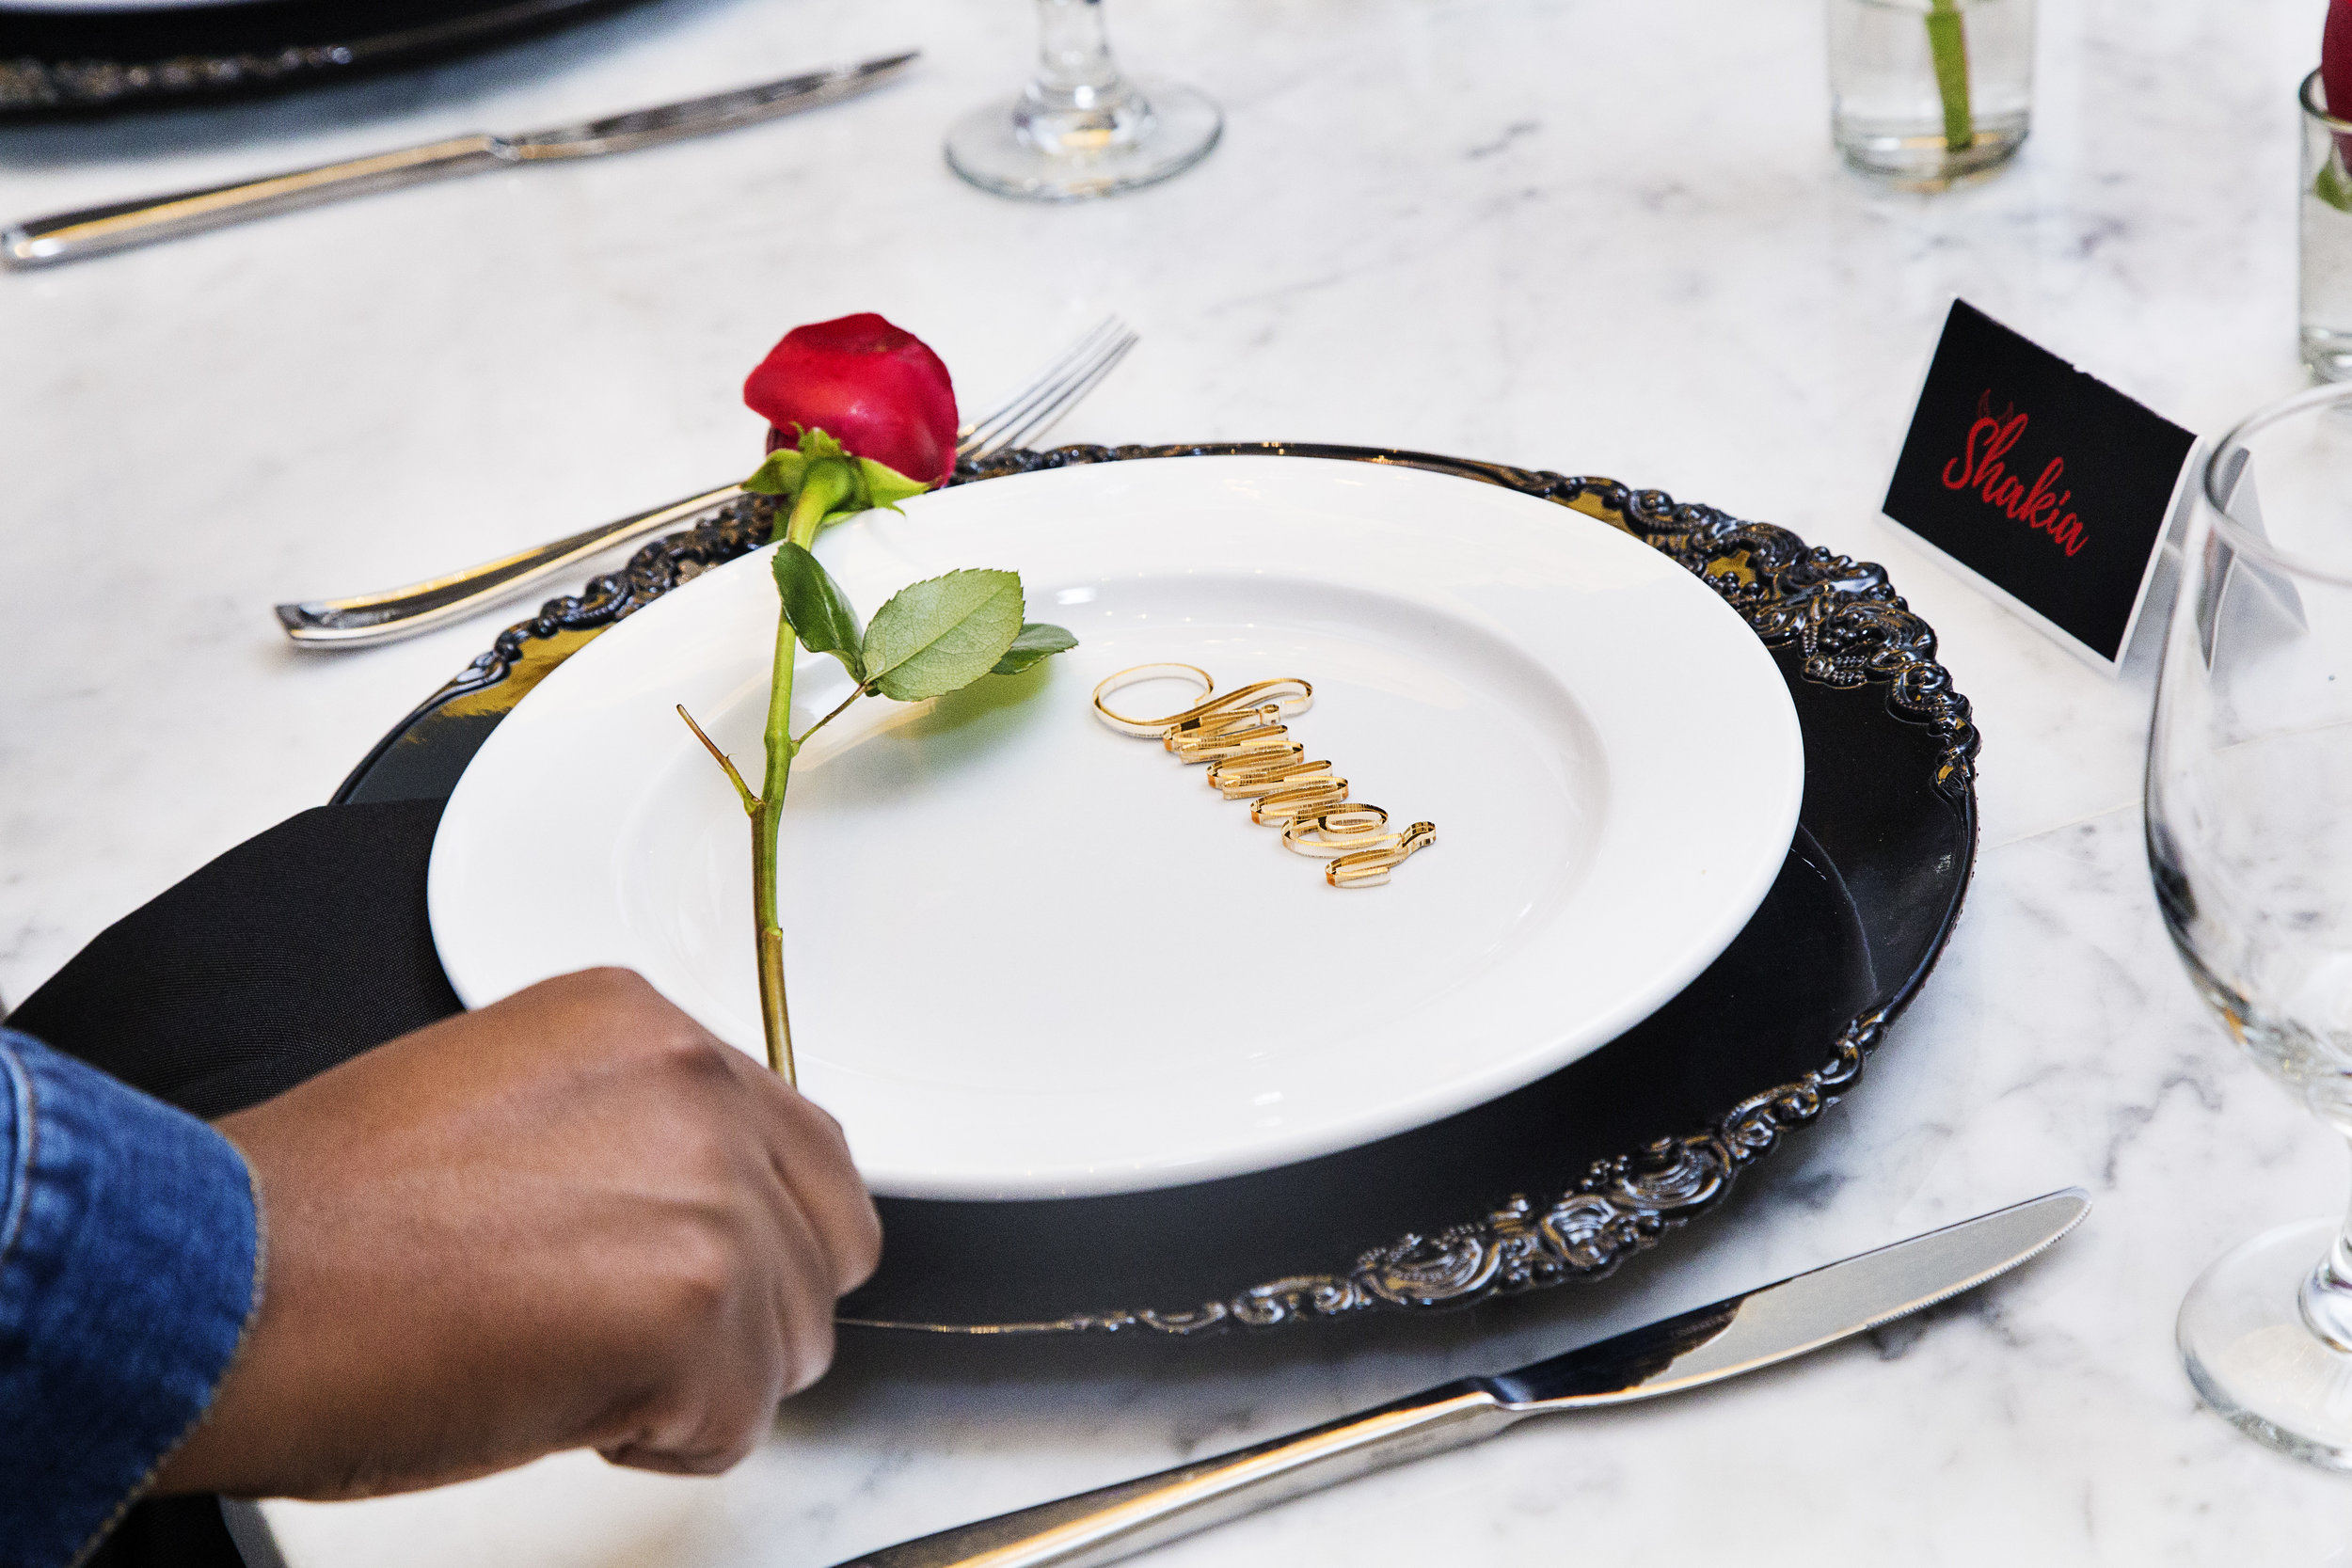 saints vs sinners dinner table setting for sinner.jpg